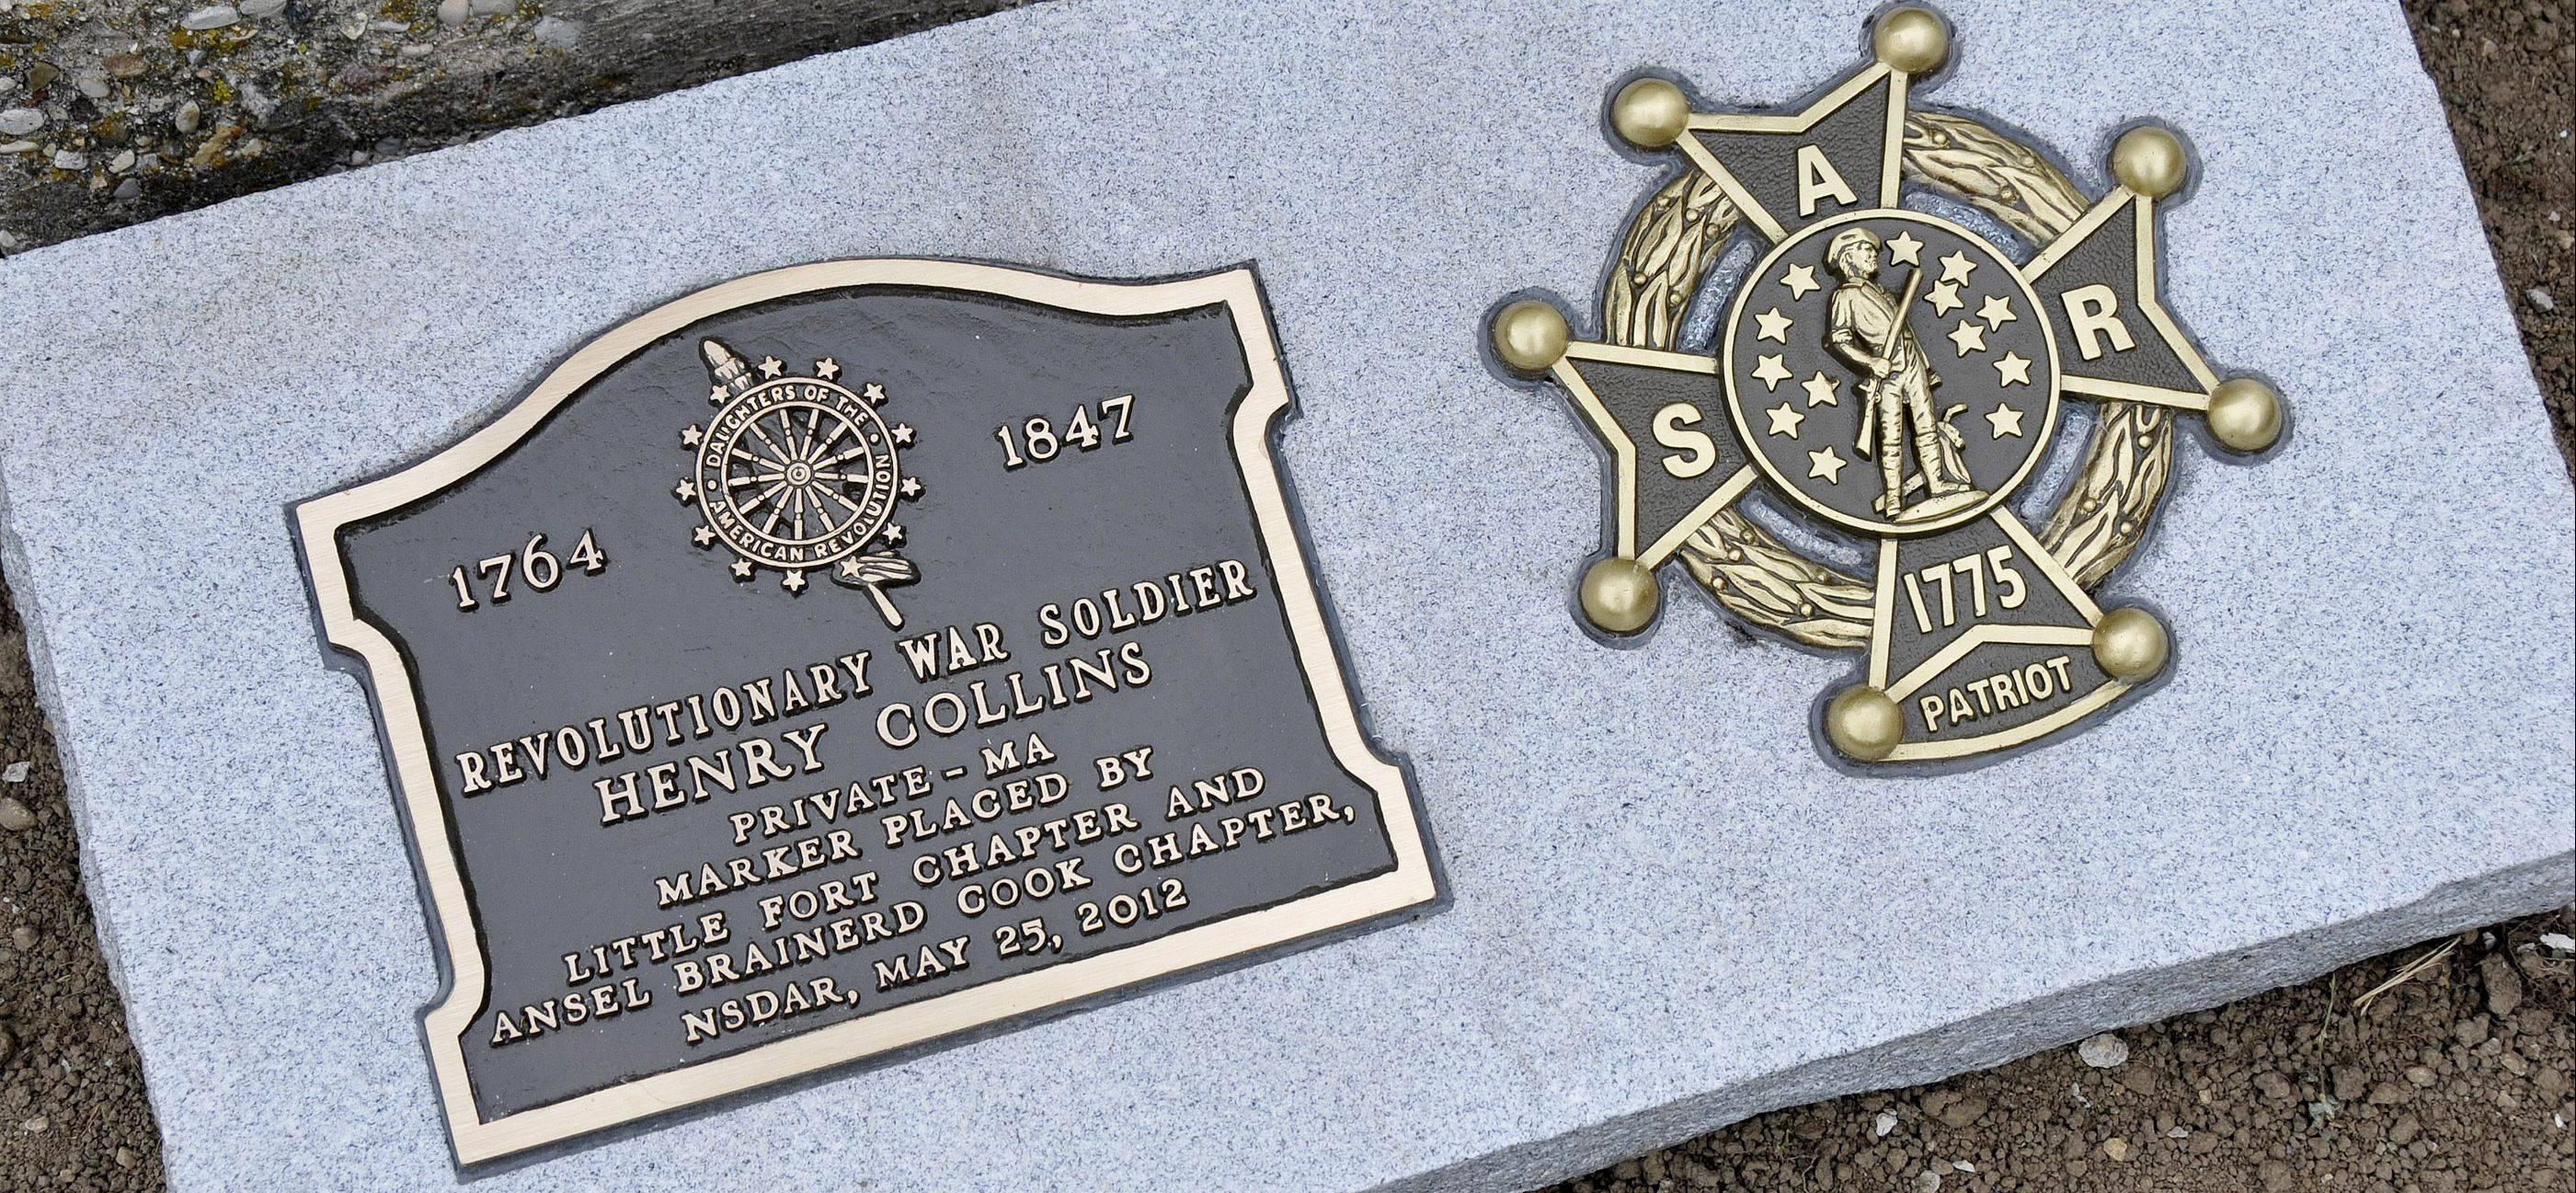 Members of the Daughters of the American Revolution from Libertyville and Waukegan and members of the Sons of the American Revolution from Lisle and Naperville unveiled new markers to honor Revolutionary War Soldier Henry Collins, who is buried in Wadsworth.